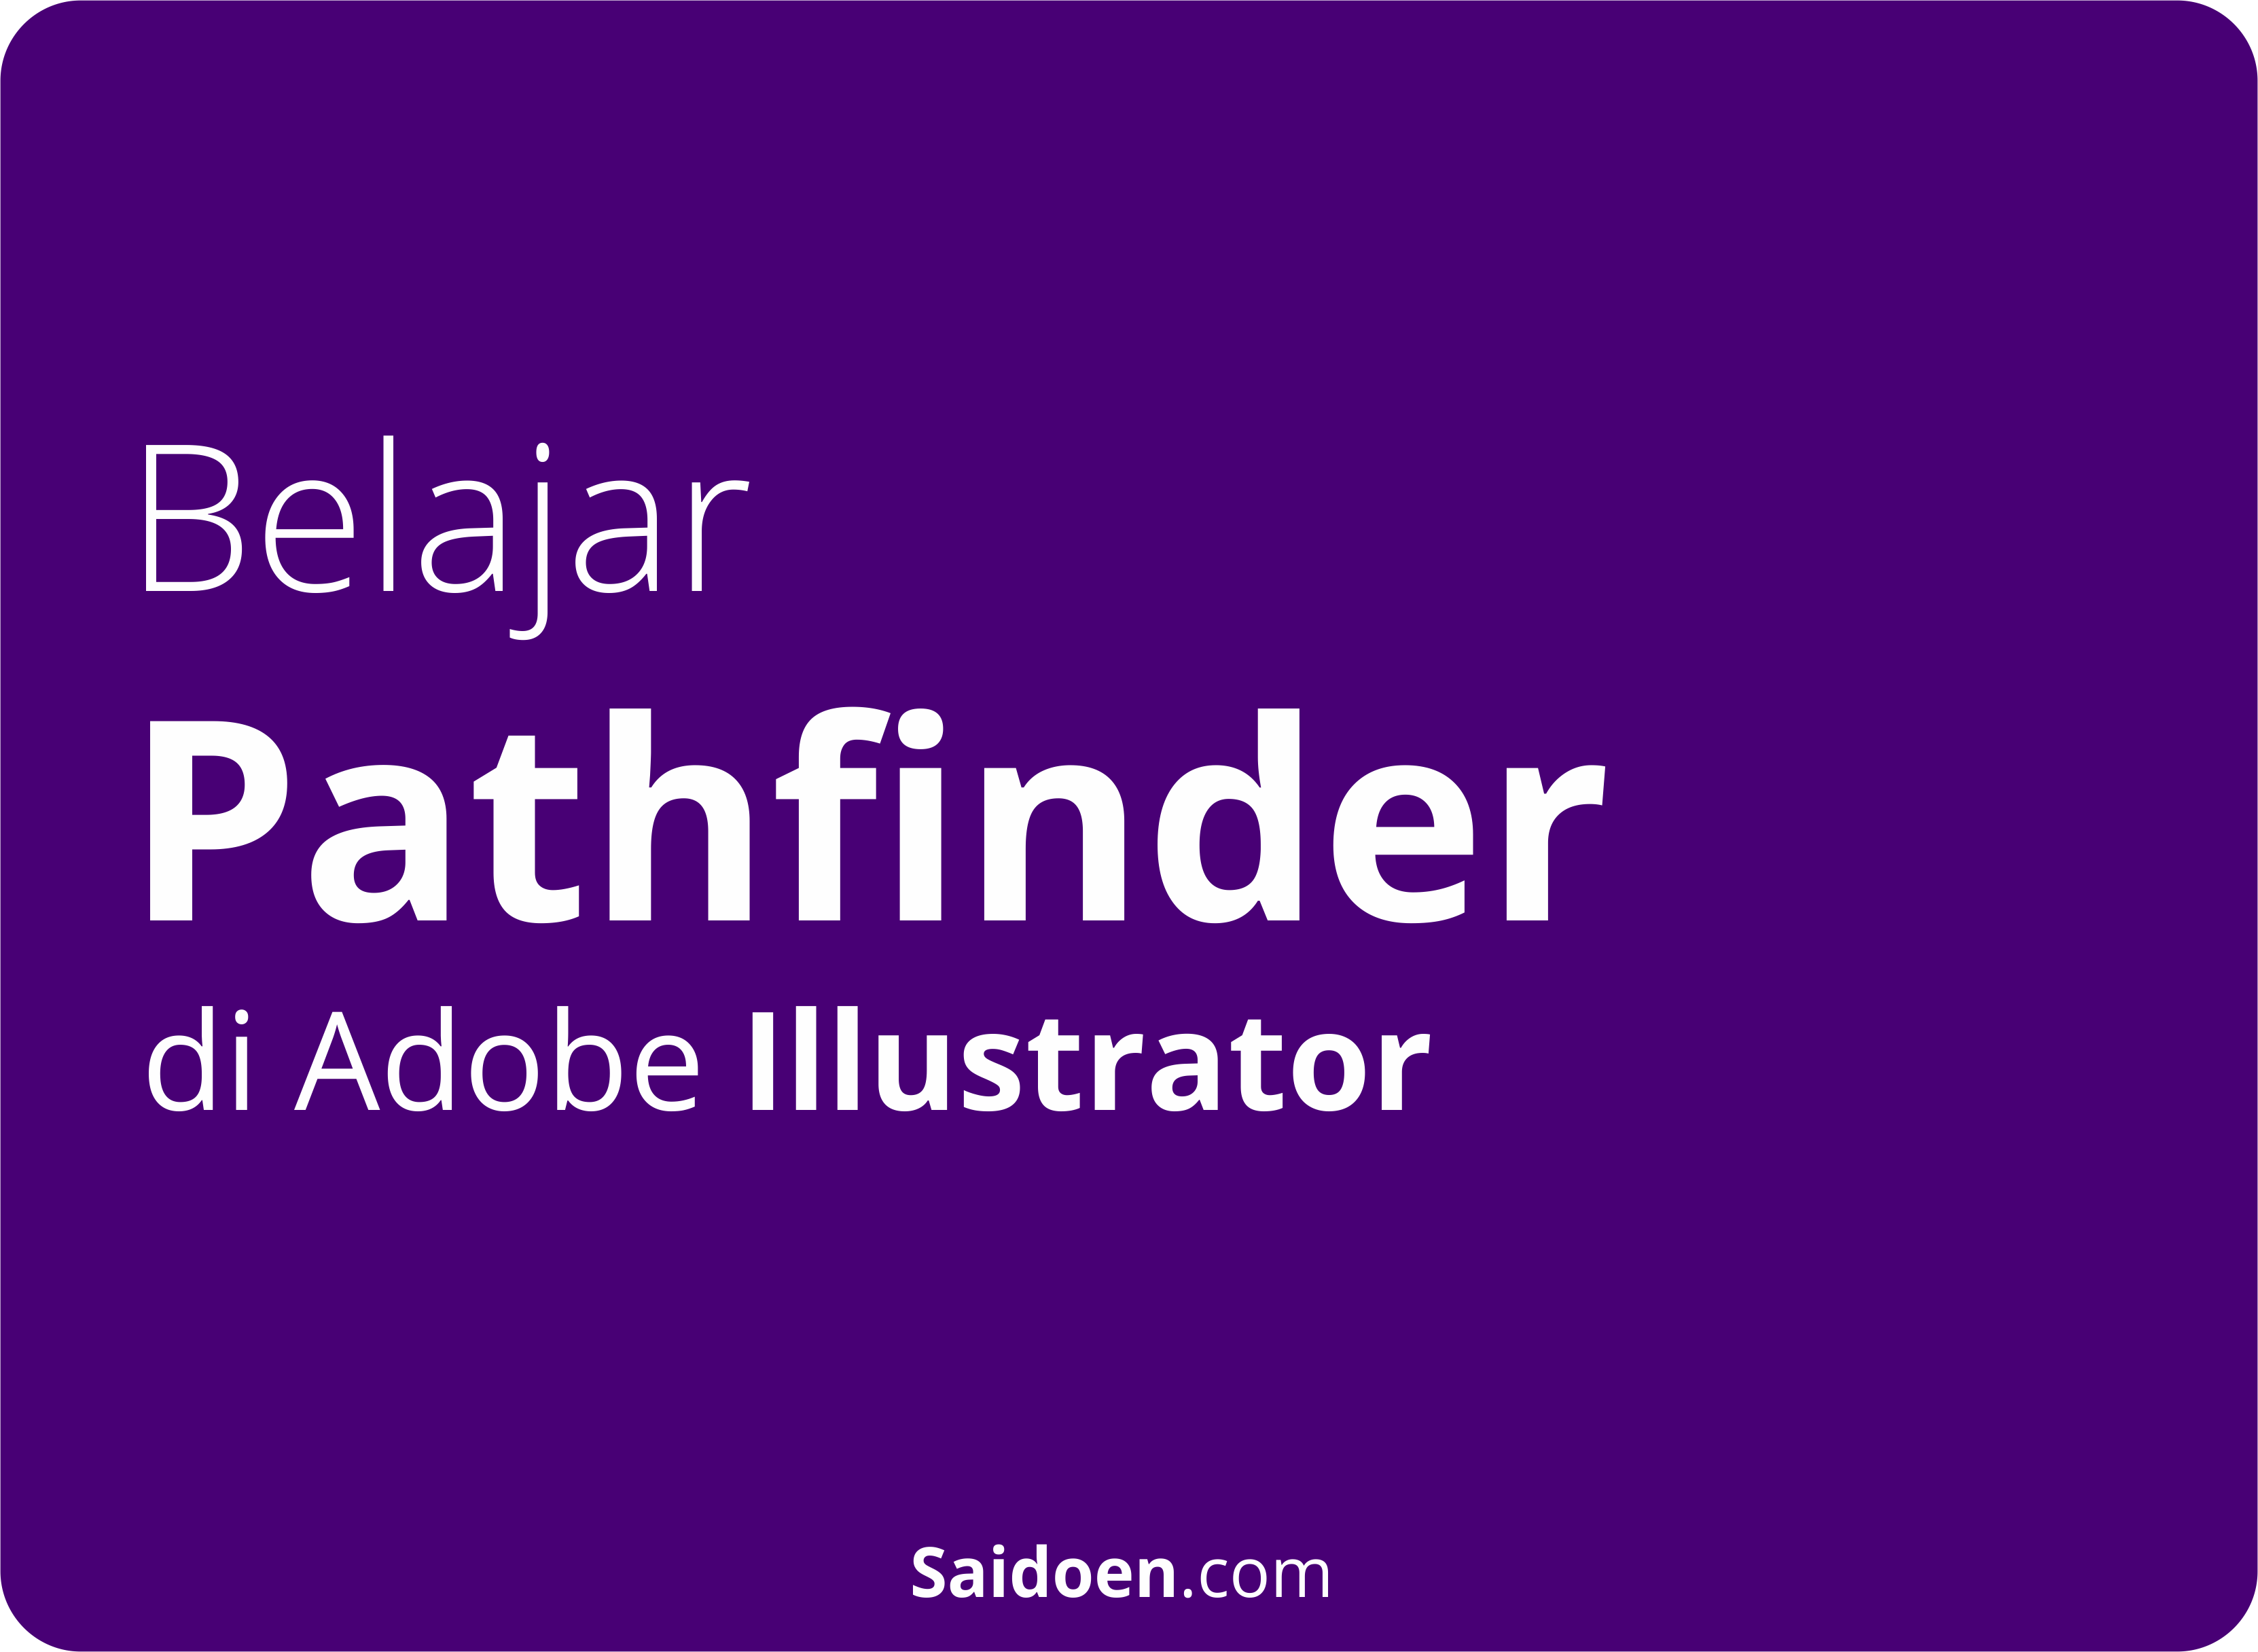 belajar-pathfinder-di-adobe-illustrator